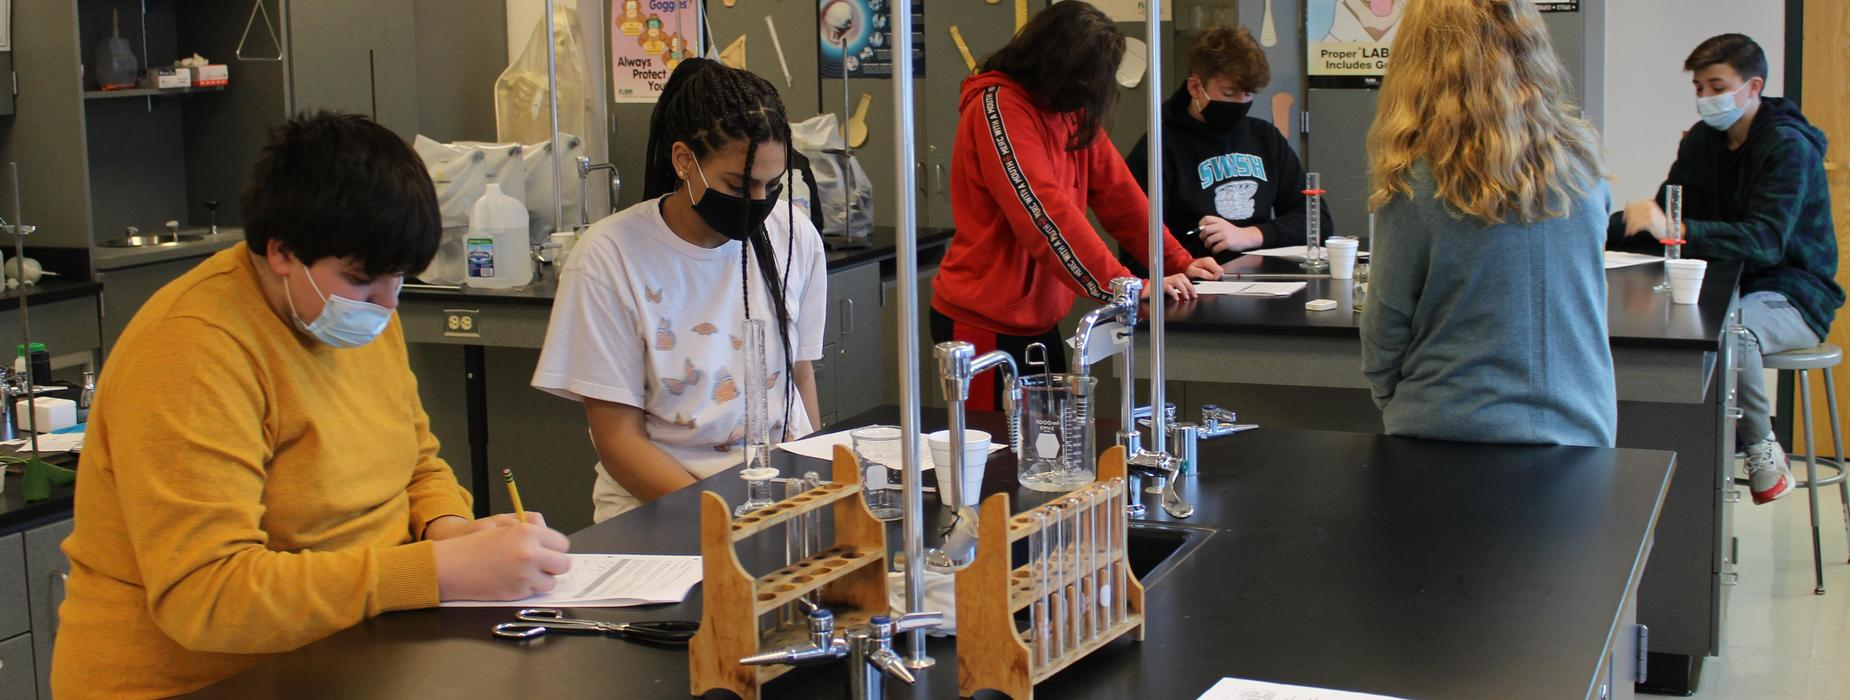 High School students working in a science lab